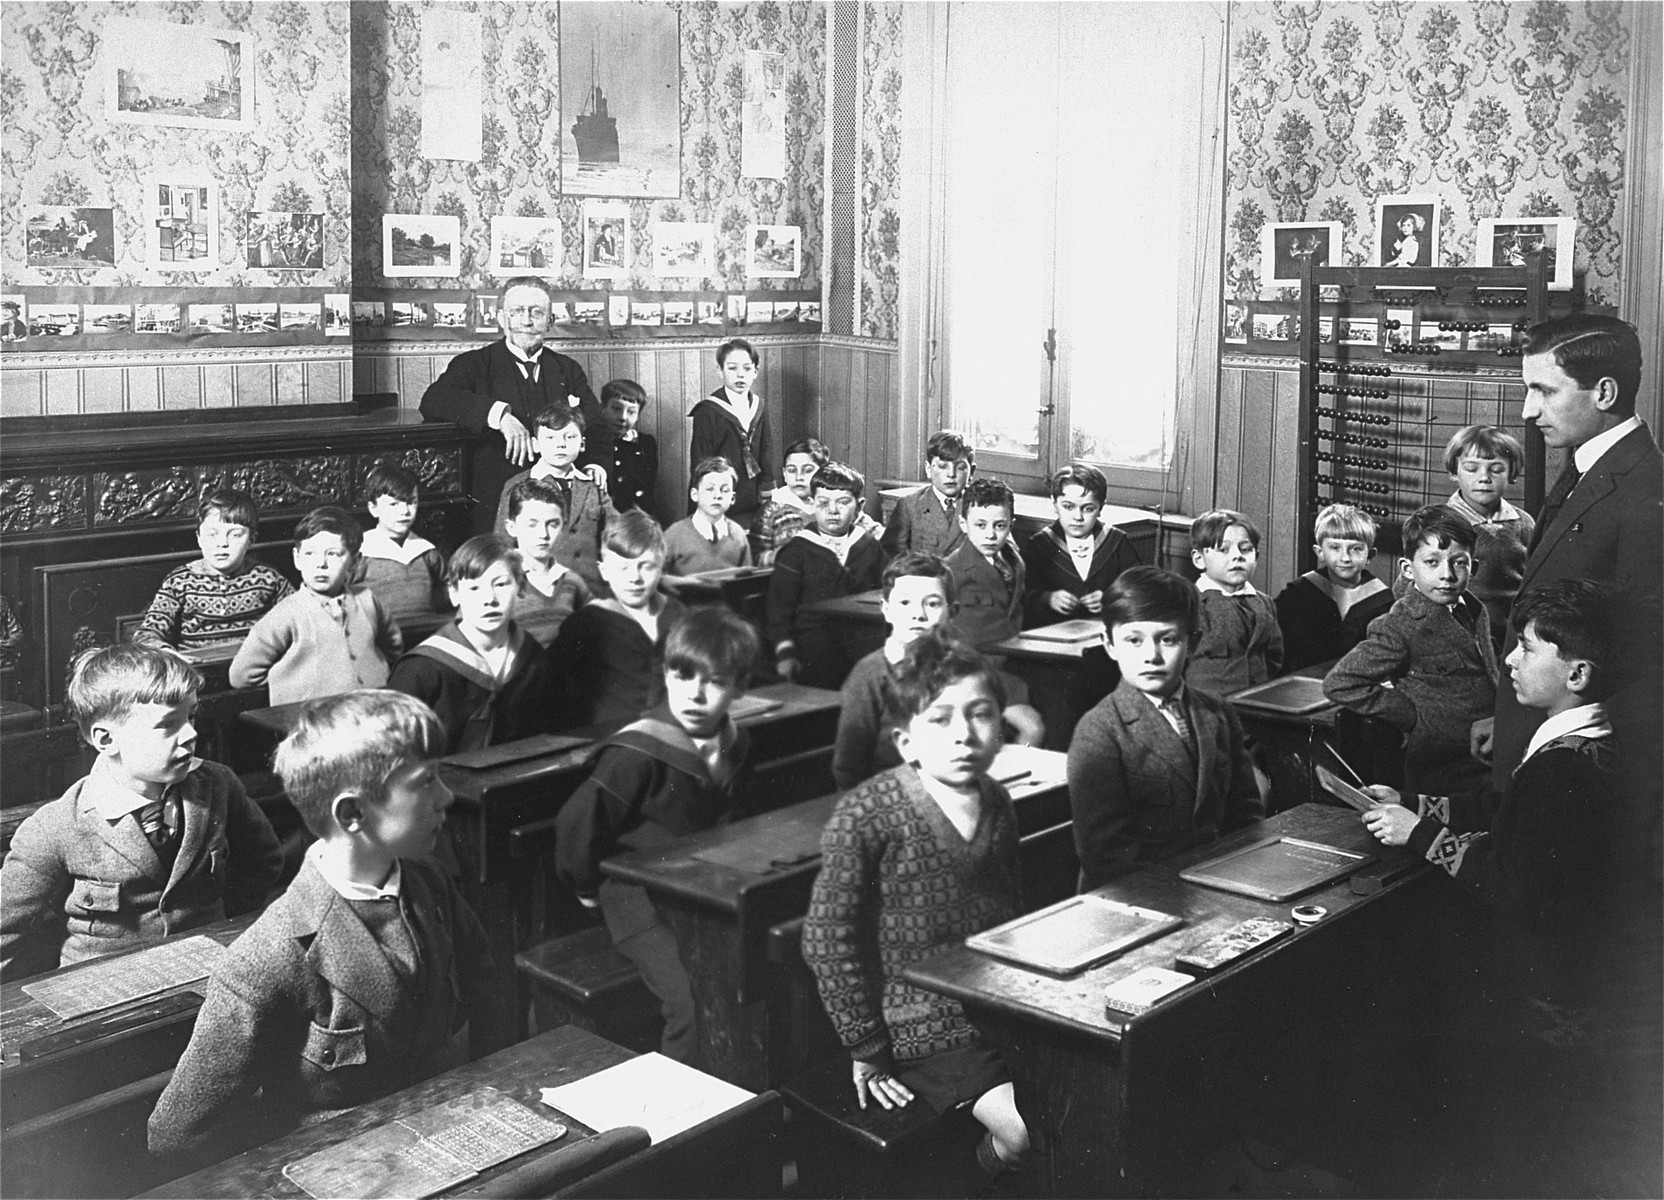 A young boy recites his lessons in a classroom in Antwerp, Belgium.  Among those pictured is Willem Friedman (seated in the middle row, second desk, left side).  Willem was born in 1919 in Holland, but from an early age lived in Belgium.